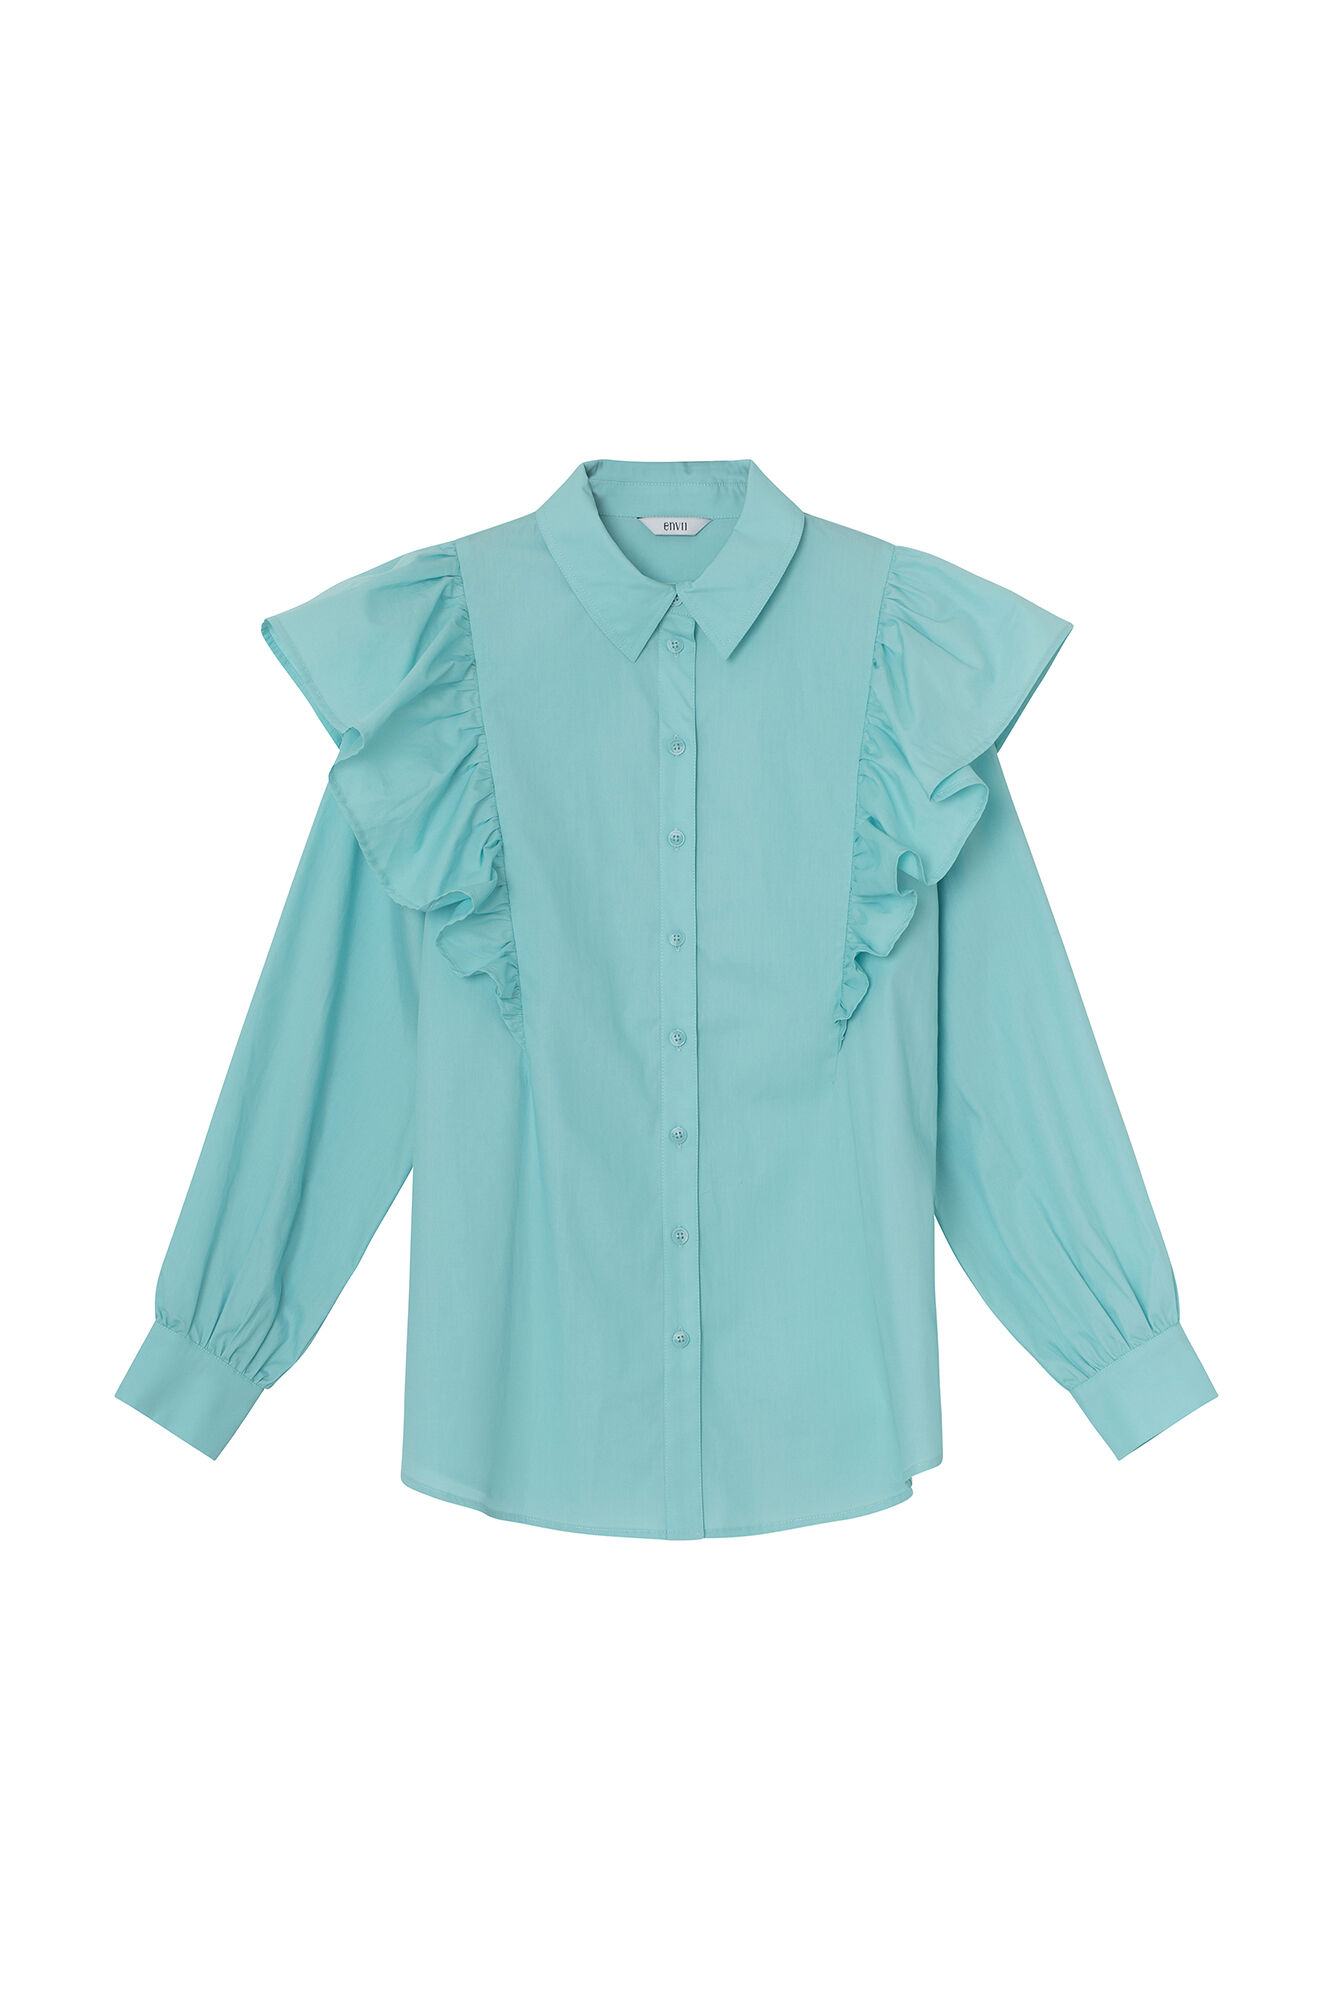 ENWANTED LS SHIRT 6709